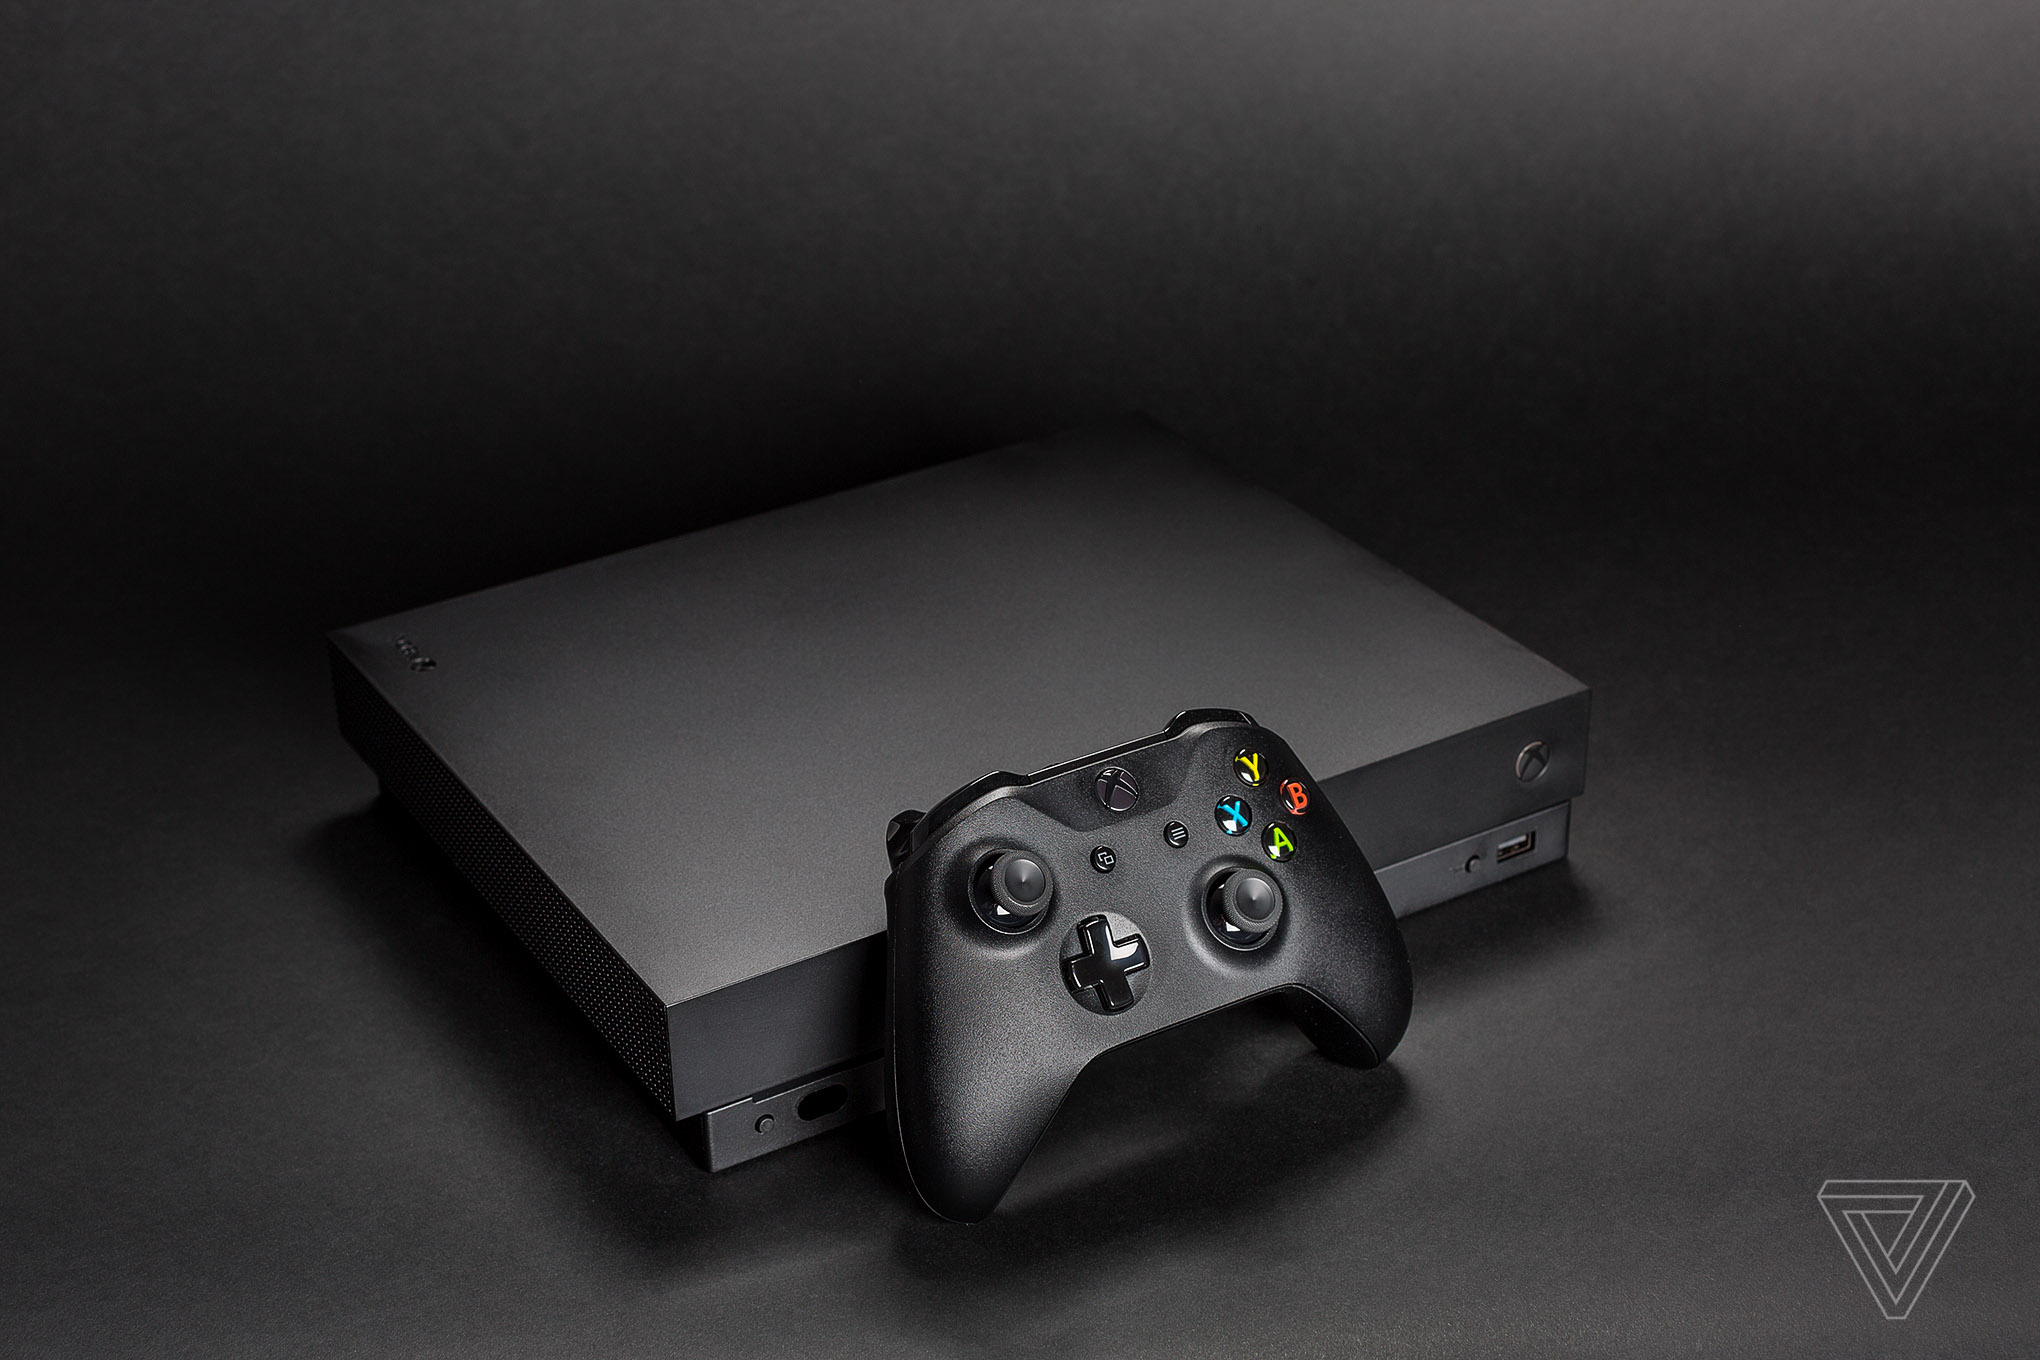 The 10 best games for your new Xbox One - The Verge